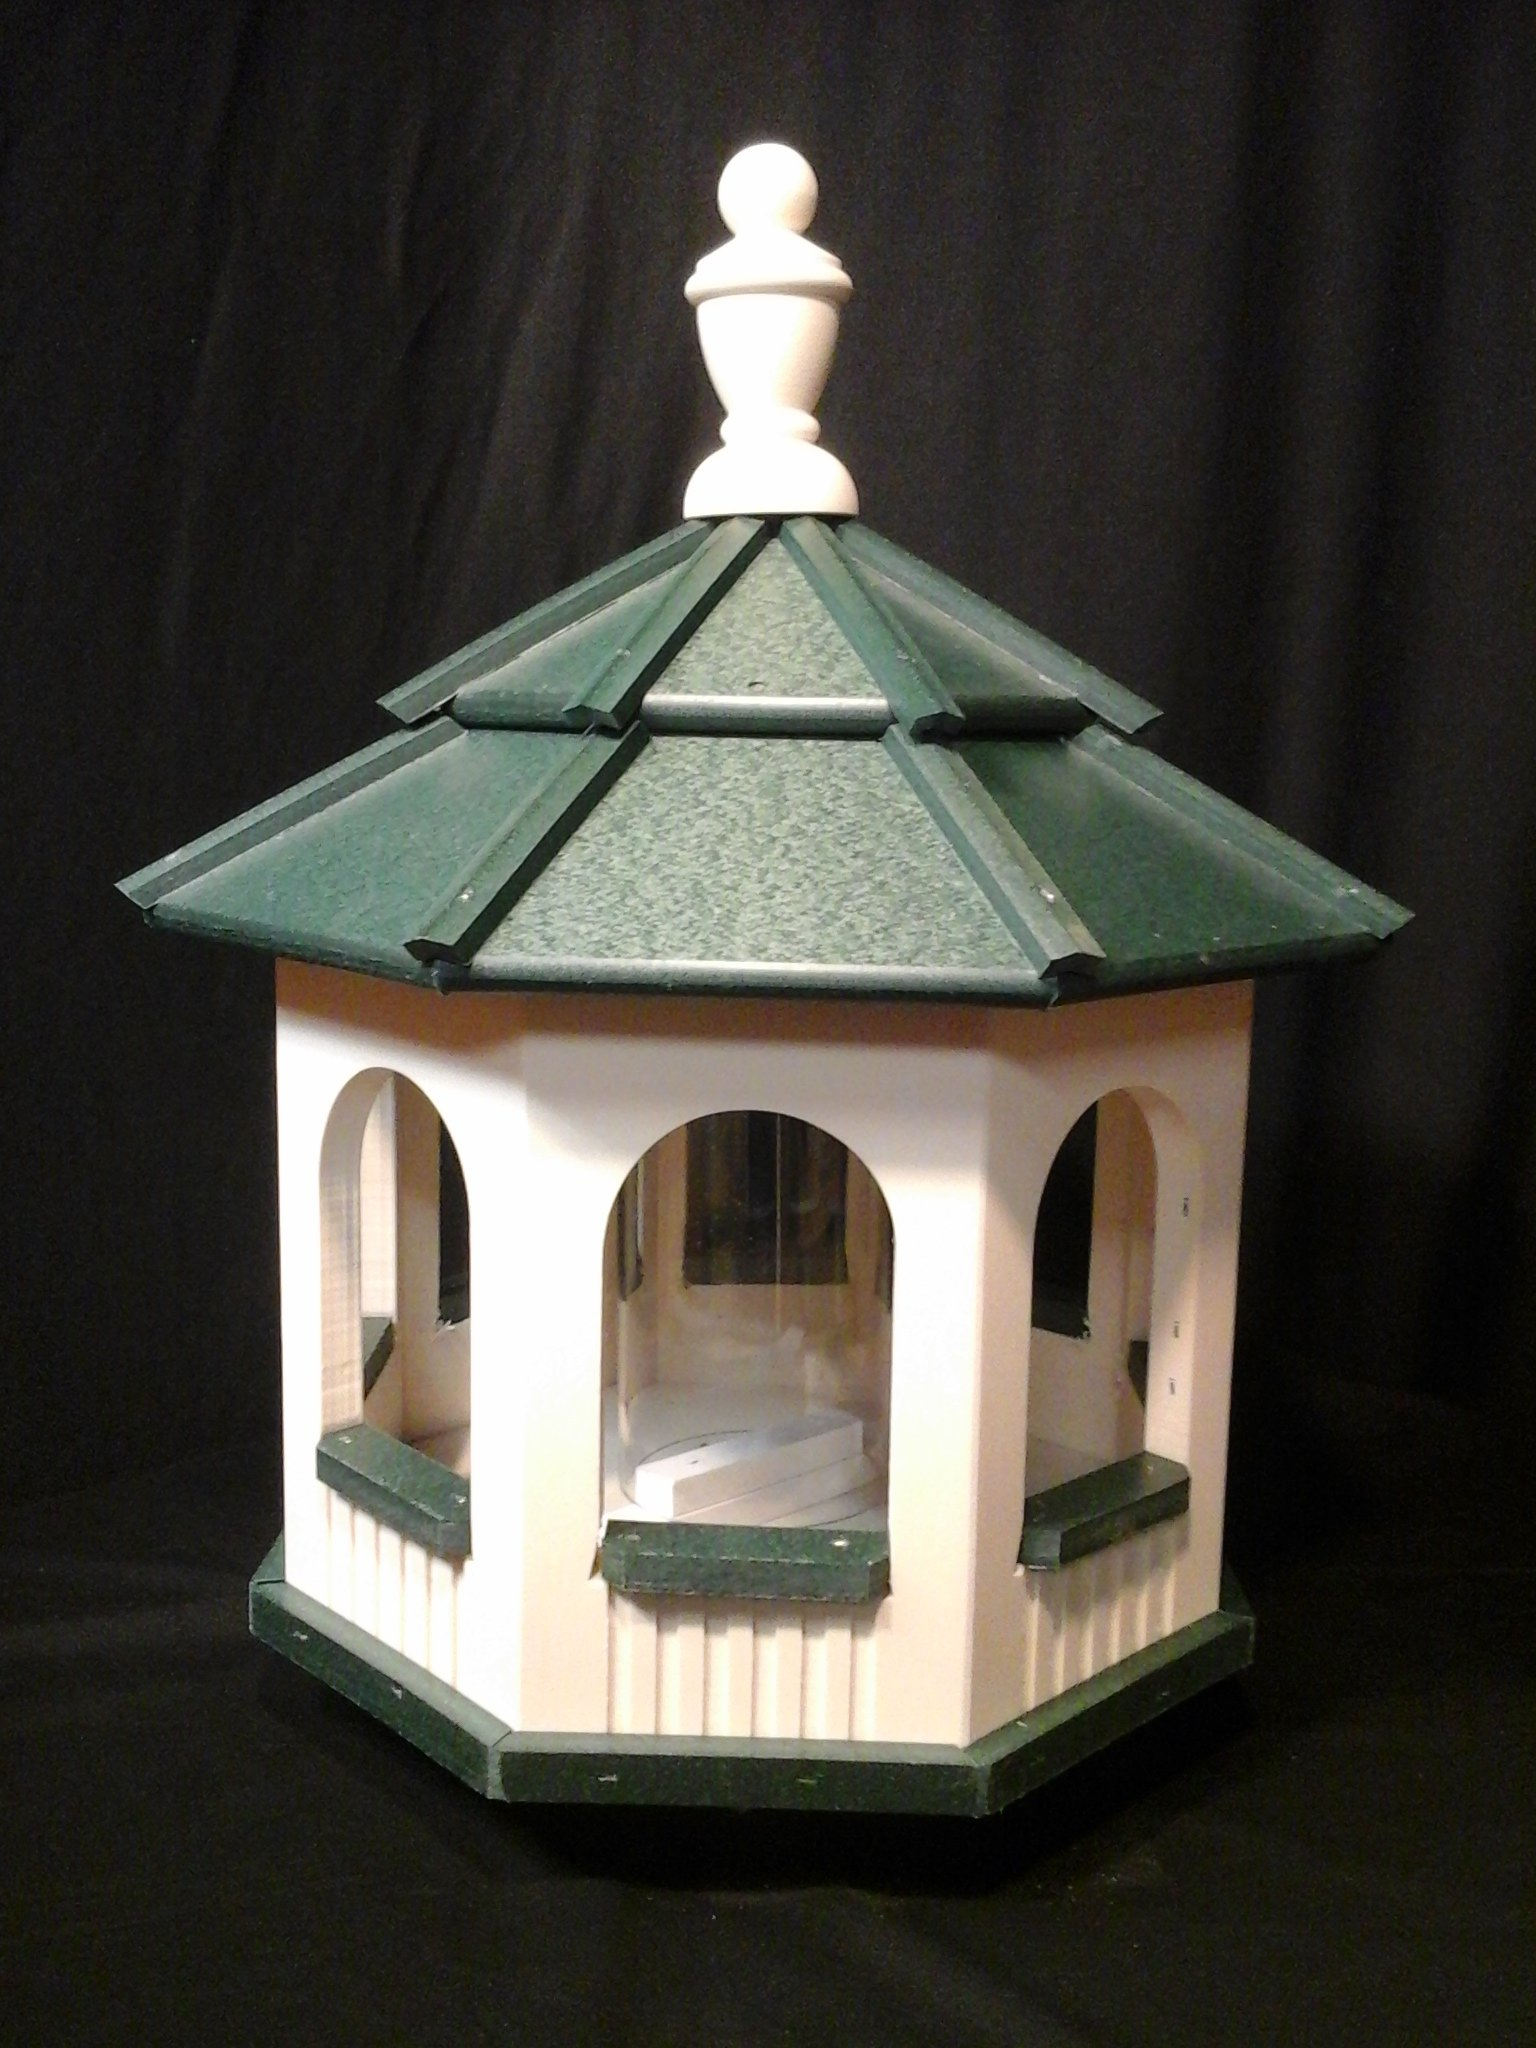 Medium Vinyl Gazebo Bird Feeder Amish Homemade Handmade Handcrafted Ivory & Green